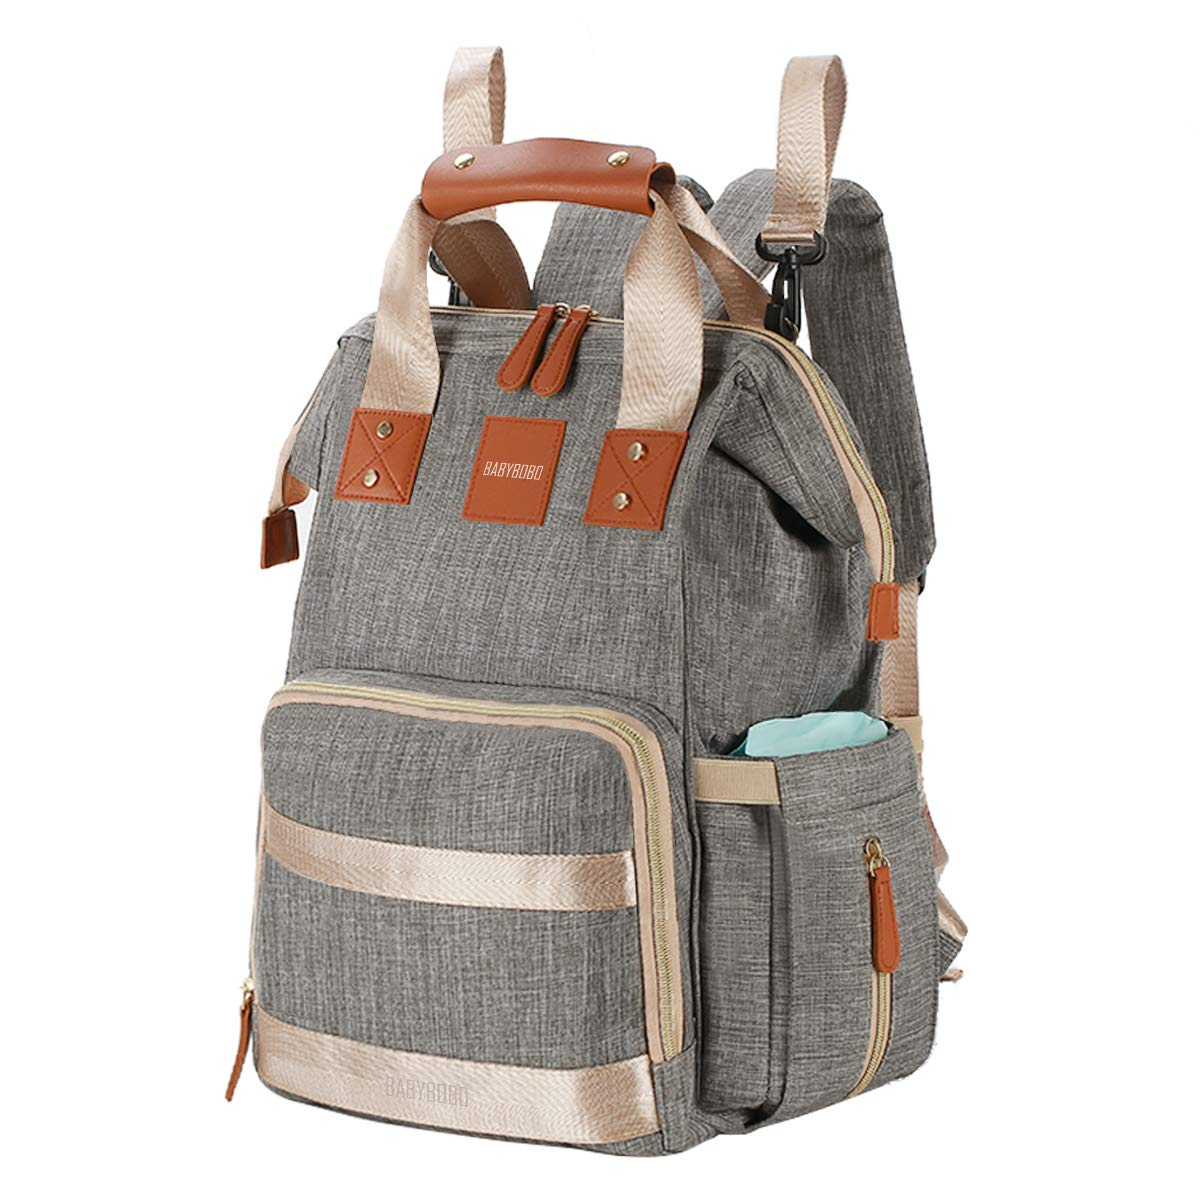 Diaper Bag Backpack Multifunction Travel Backpack Maternity Baby Nappy Changing Bags for Mom/Dad with Baby Care,Large Capacity,Waterproof,Stroller Straps and Stylish,Grey Lanling information-US LLDB01